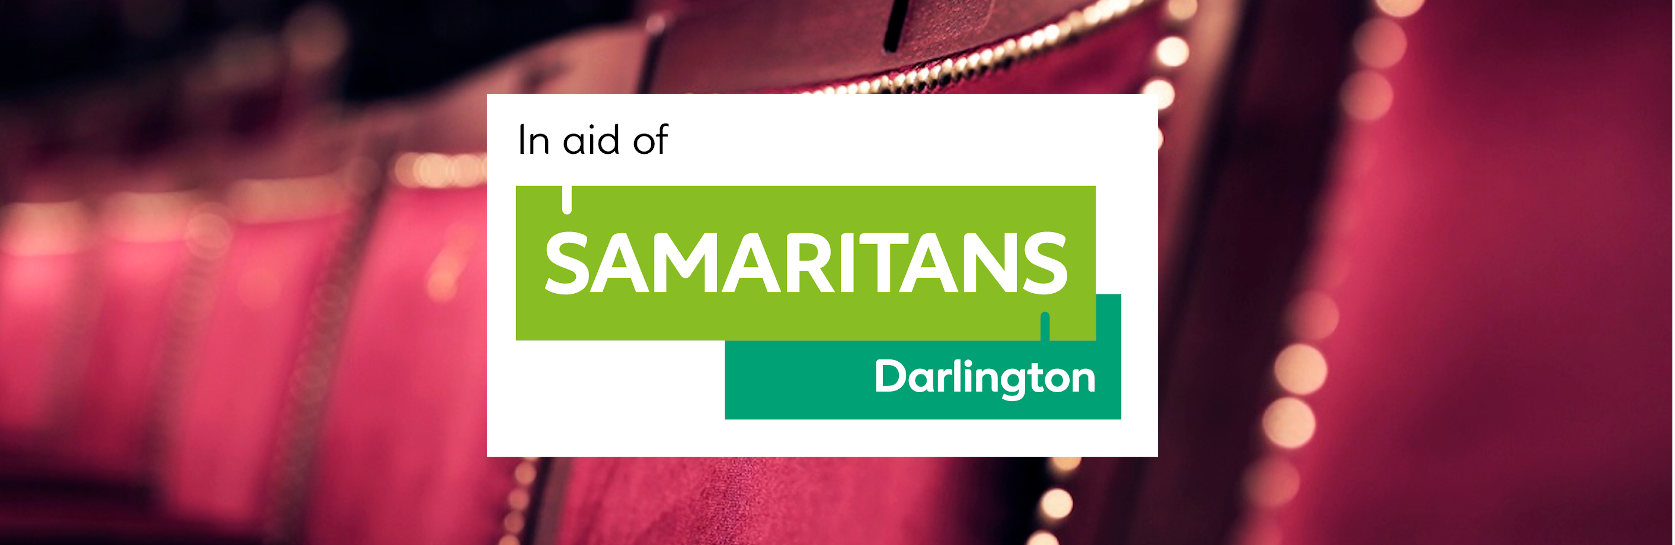 Darlington Hippodrome staff have selected Darlington Samaritans as their new annual charity partner